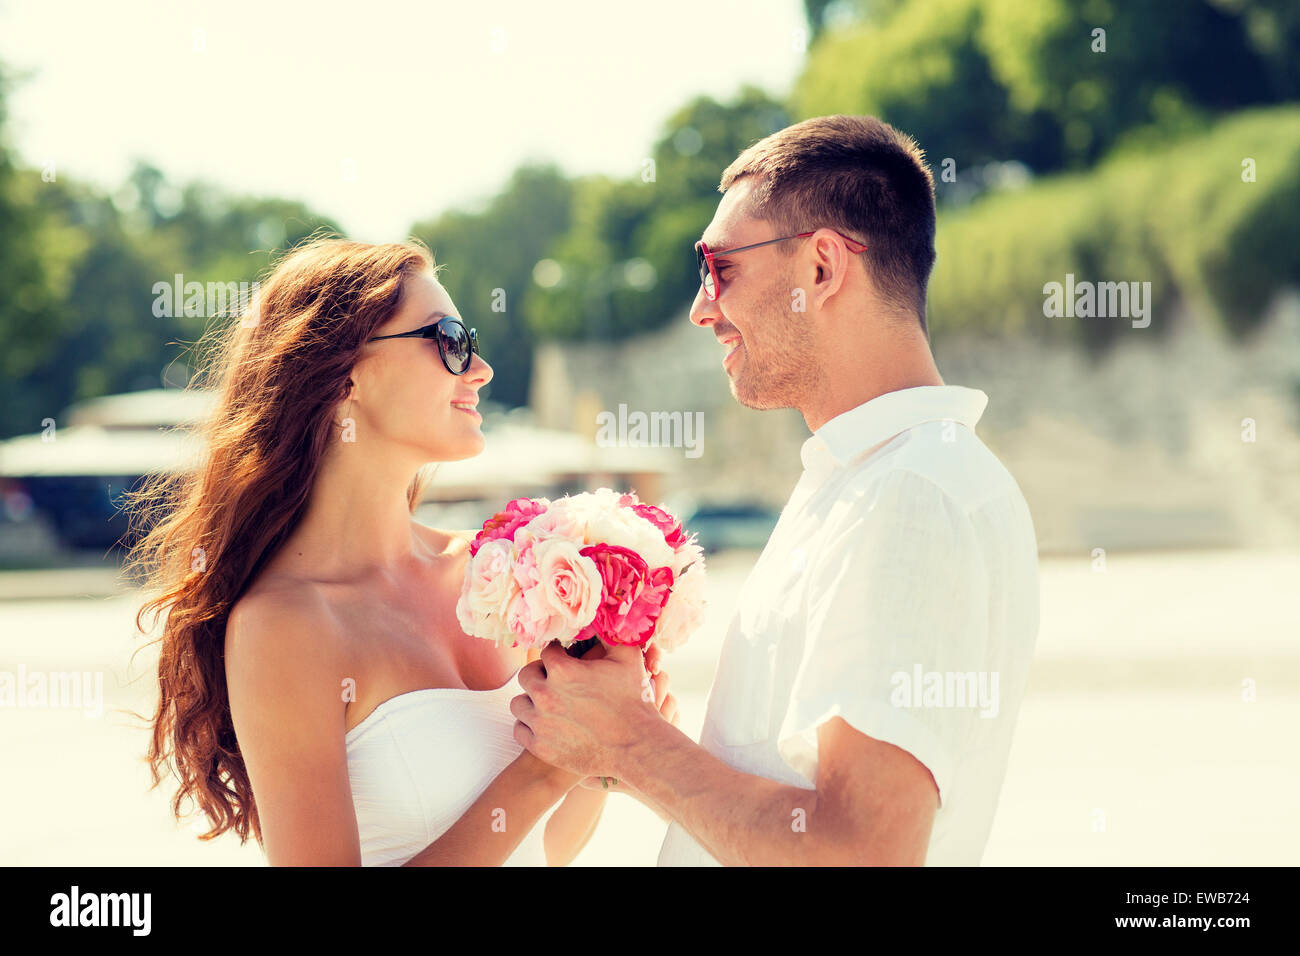 Smiling couple in city Photo Stock